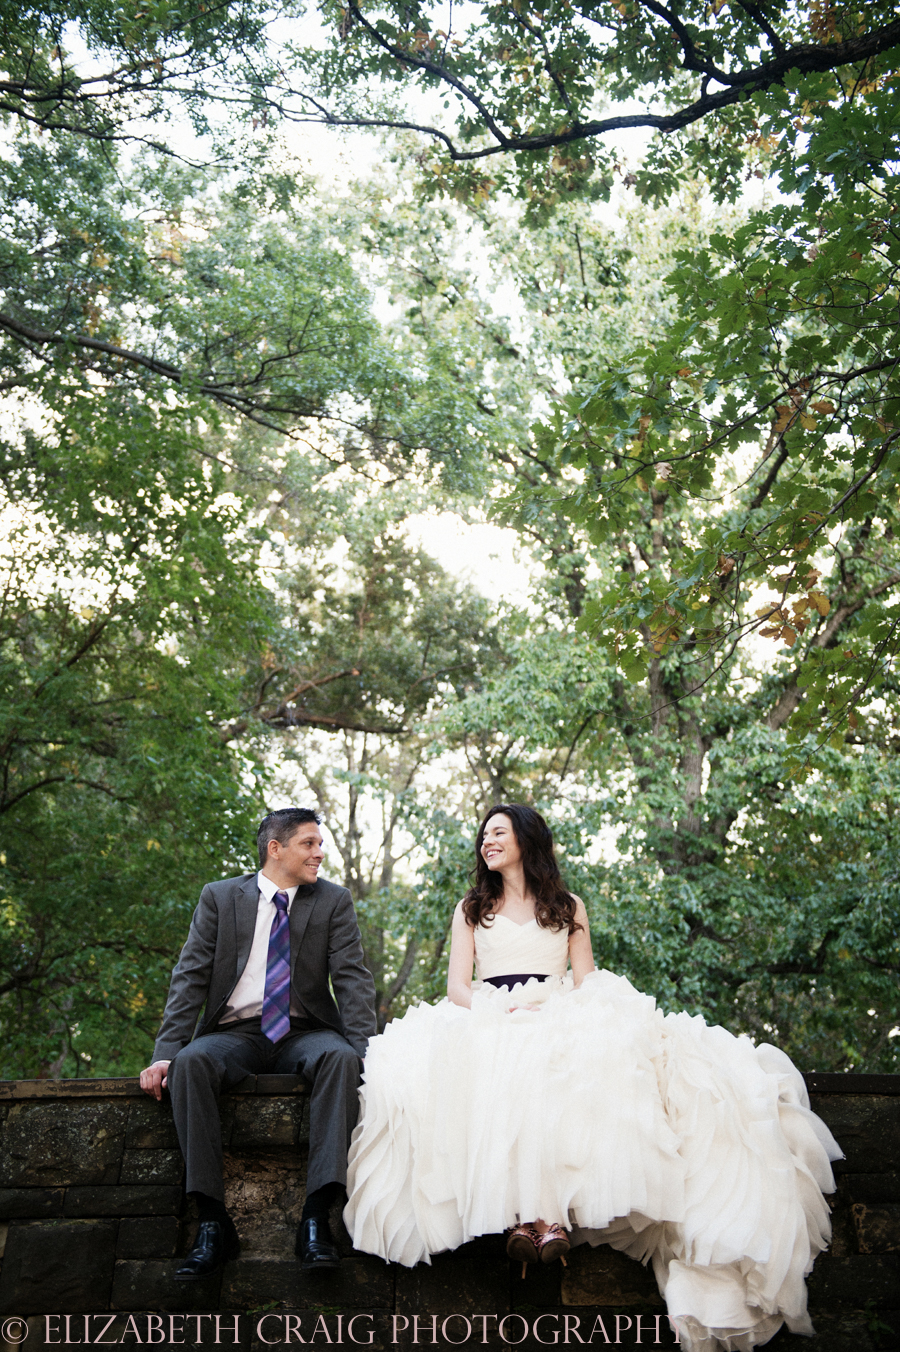 Romantic Wedding Photos | Elizabeth Craig Photography-004